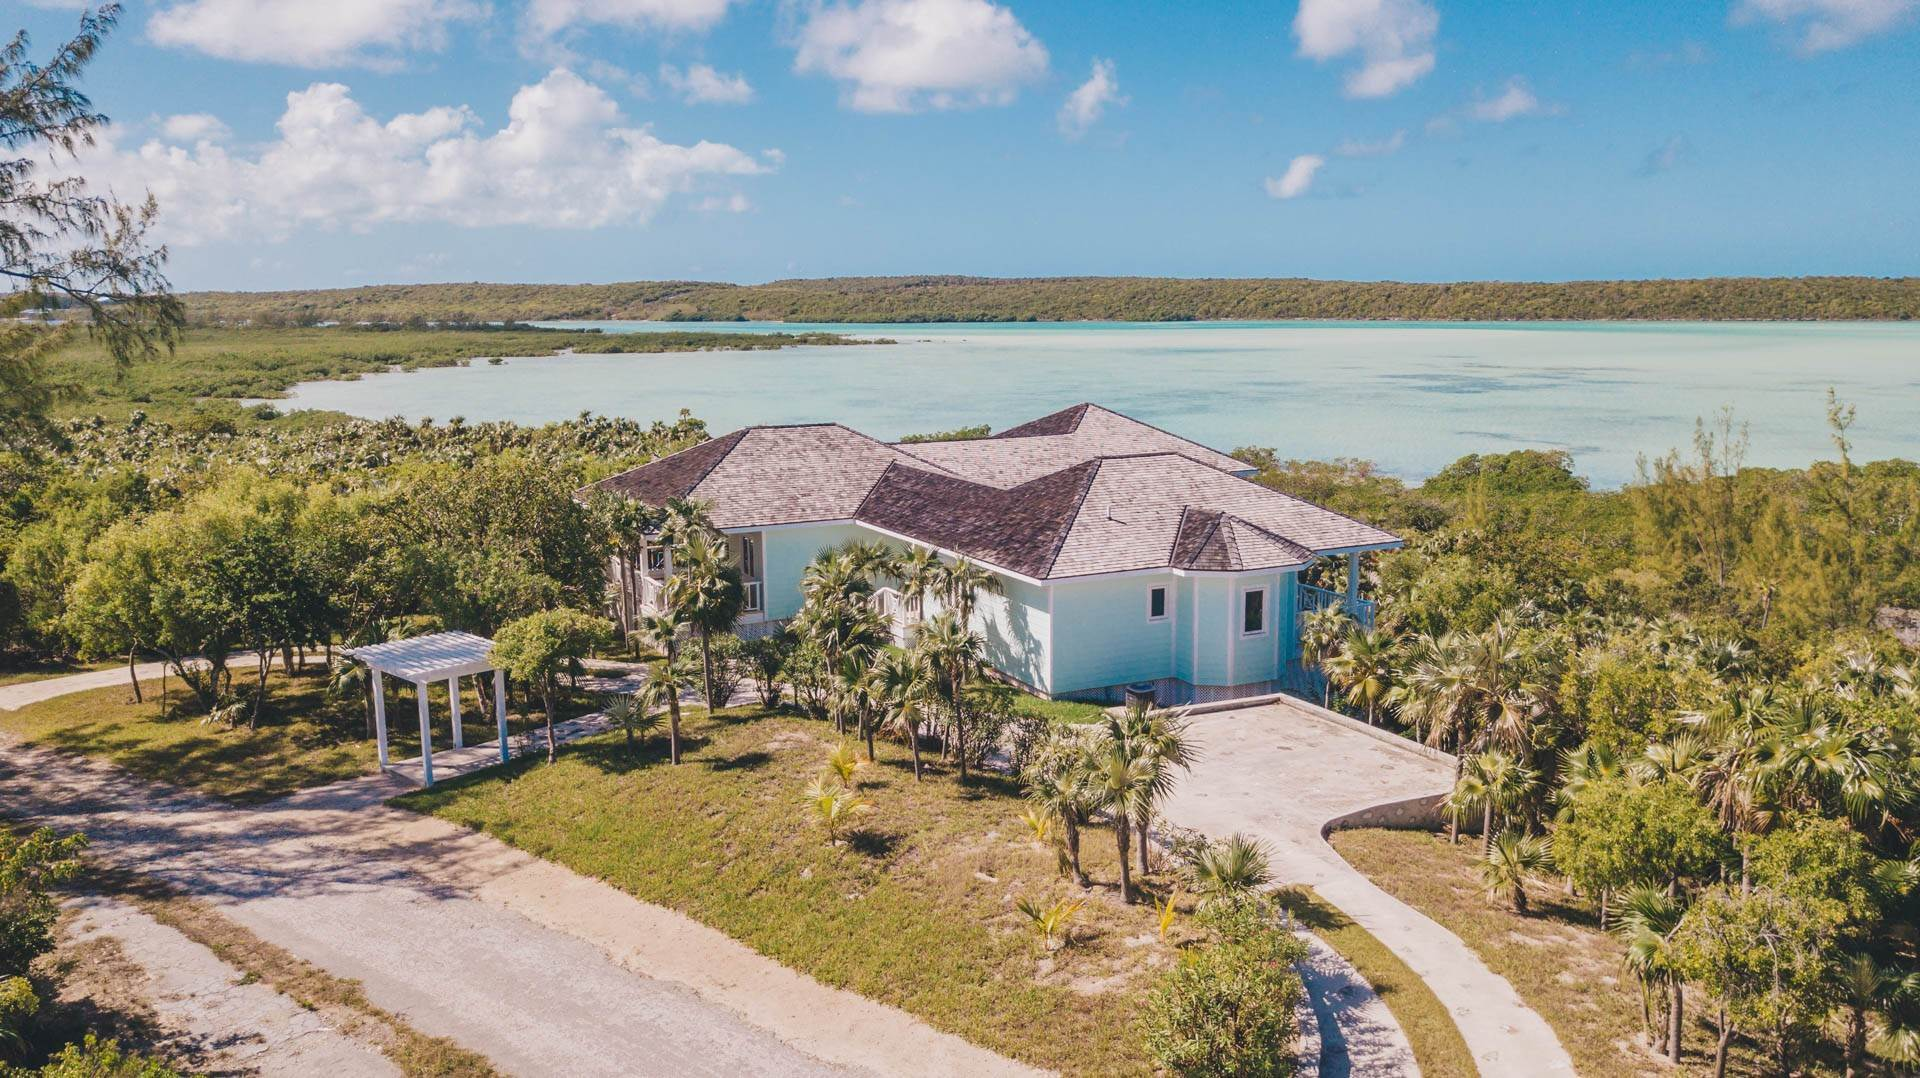 38. Single Family Homes for Sale at Savannah Sound Home - Windermere Island - MLS 44478 Windermere Island, Eleuthera, Bahamas